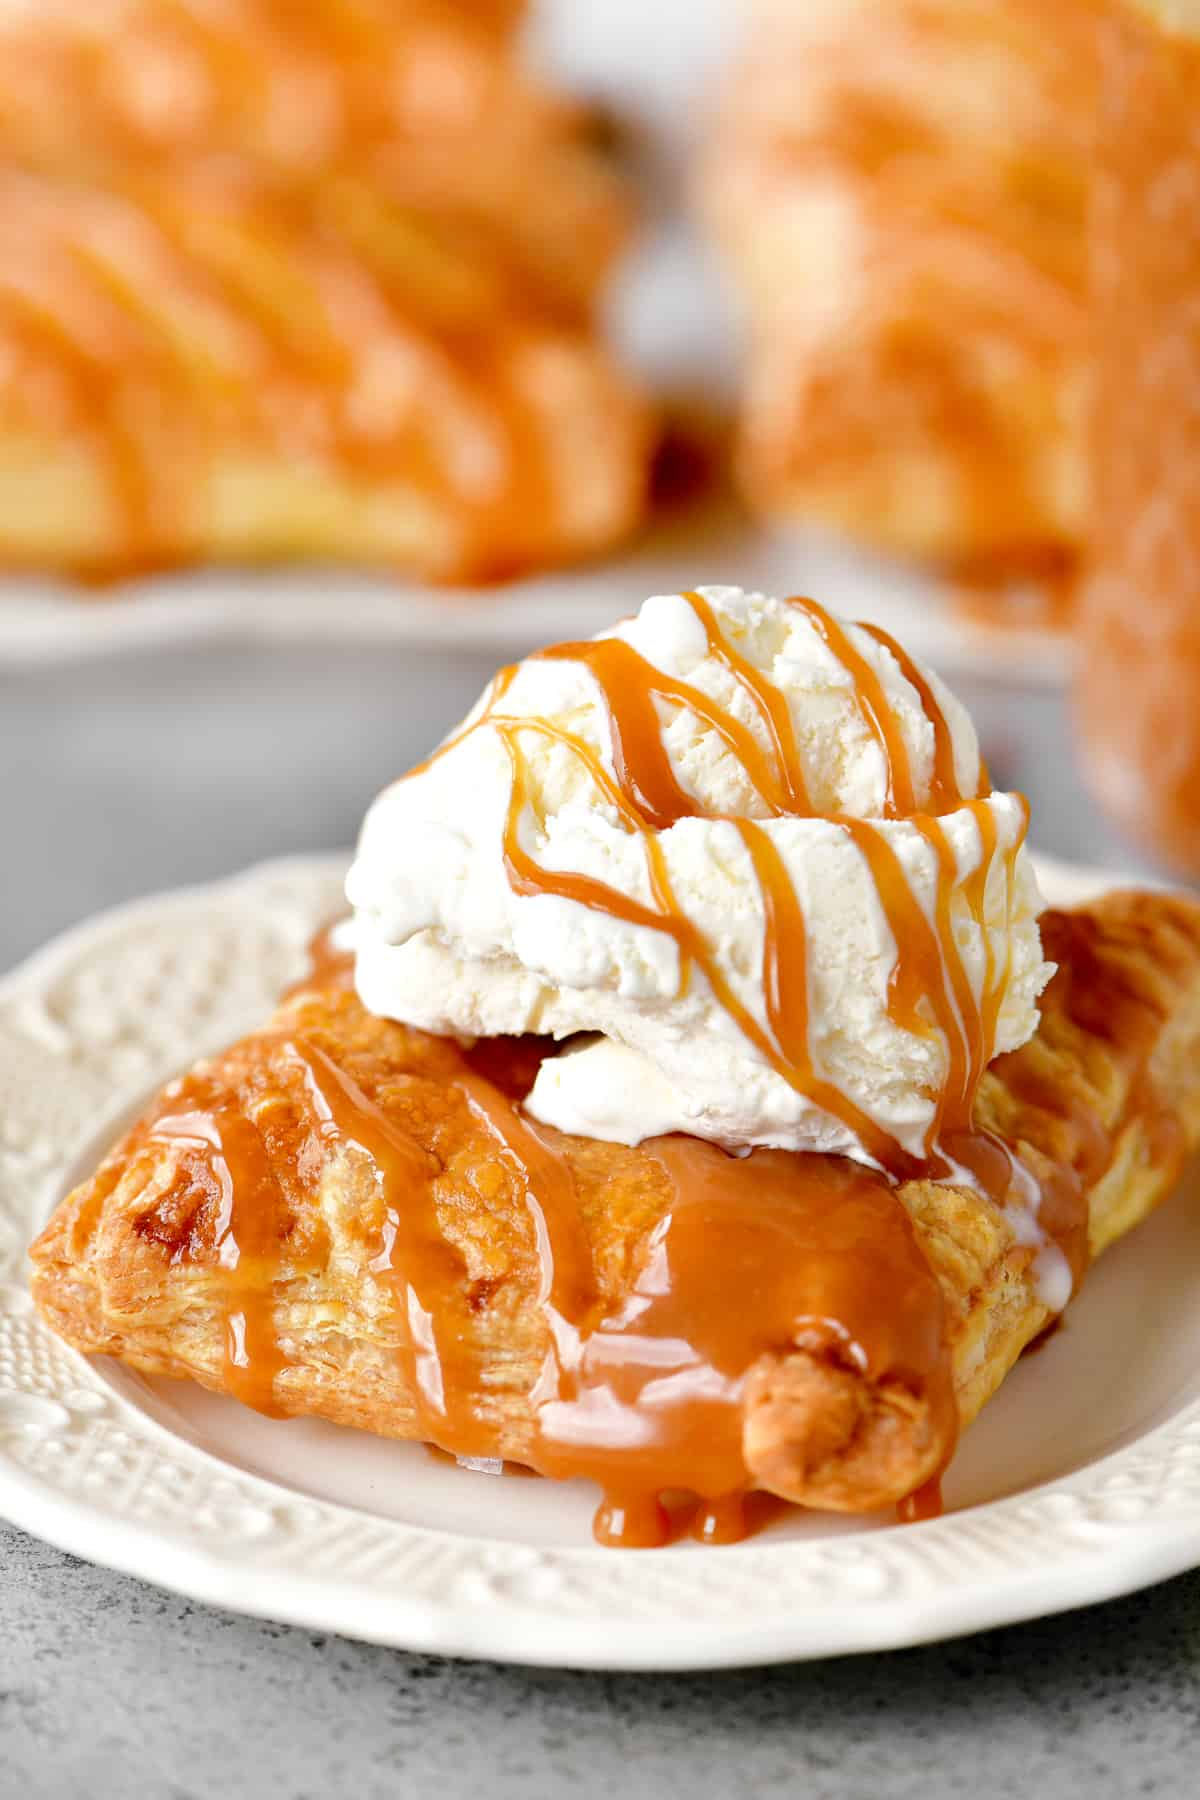 a delectable piece of Caramel Apple dessert with vanilla ice cream and caramel on top